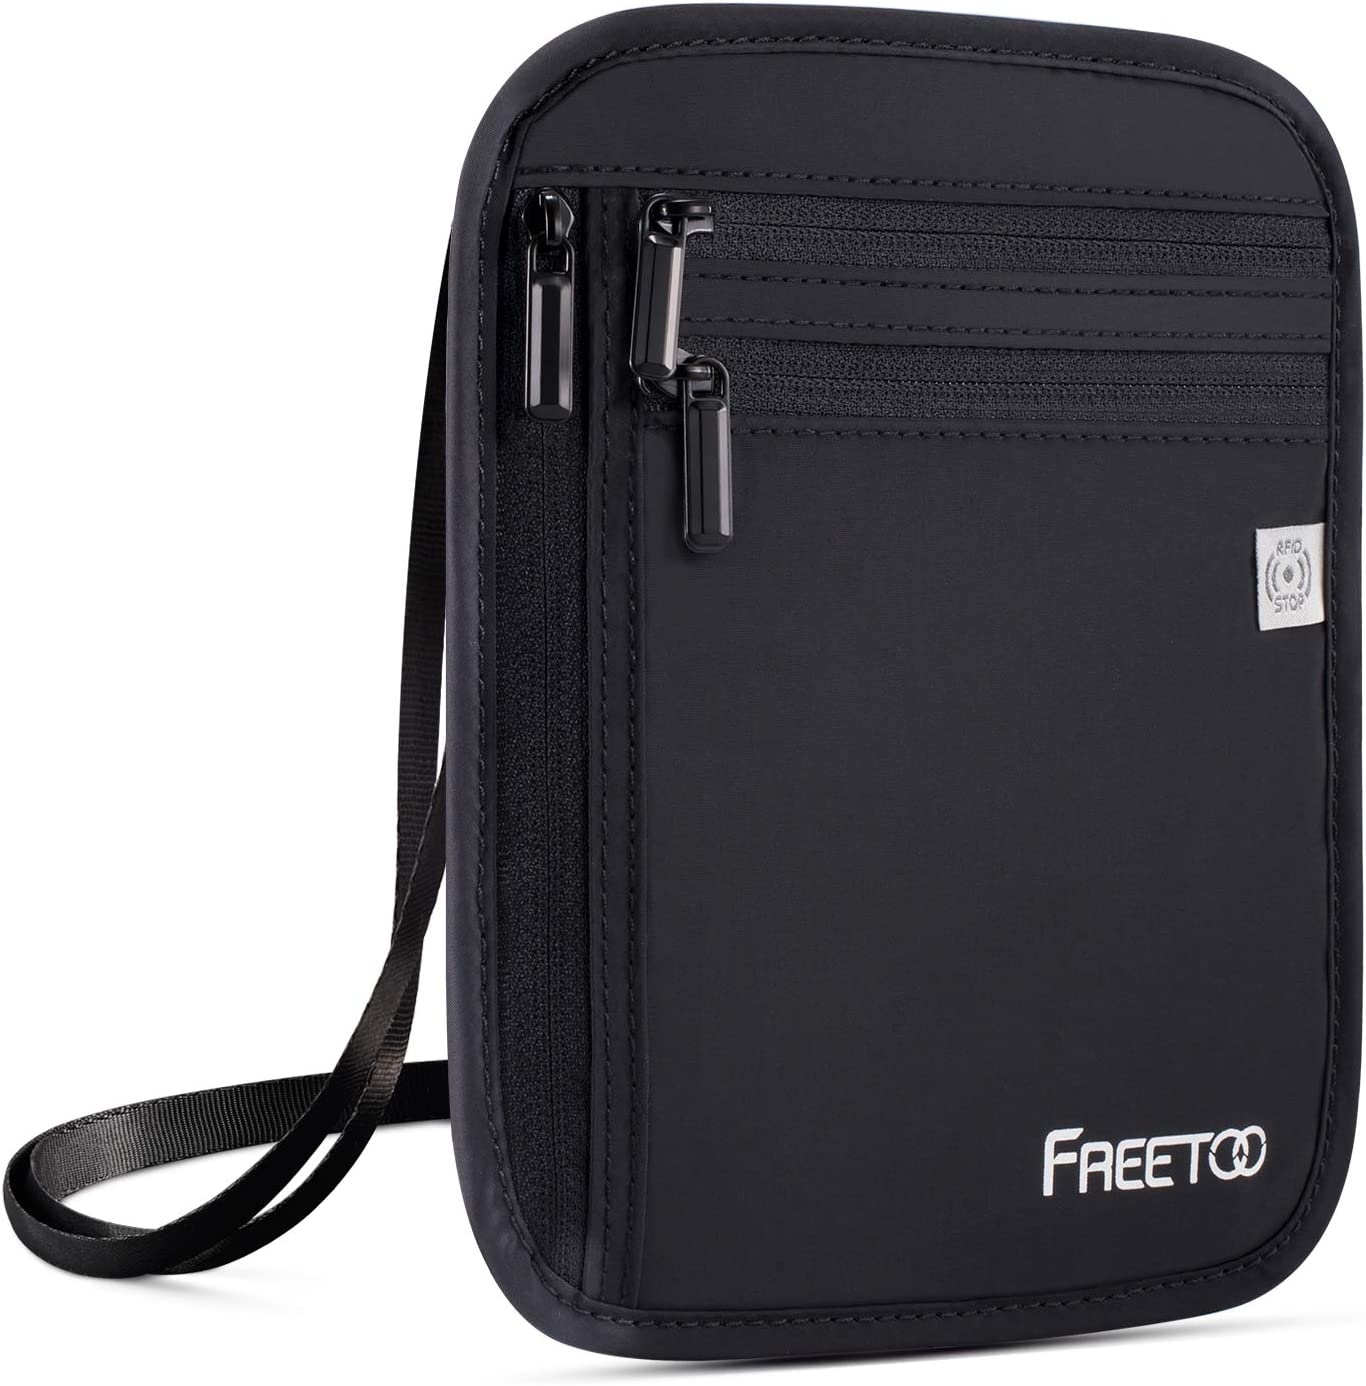 FREETOO Neck Wallet Travel Blocking Pouch RFID Max 63% OFF Overseas parallel import regular item Wall